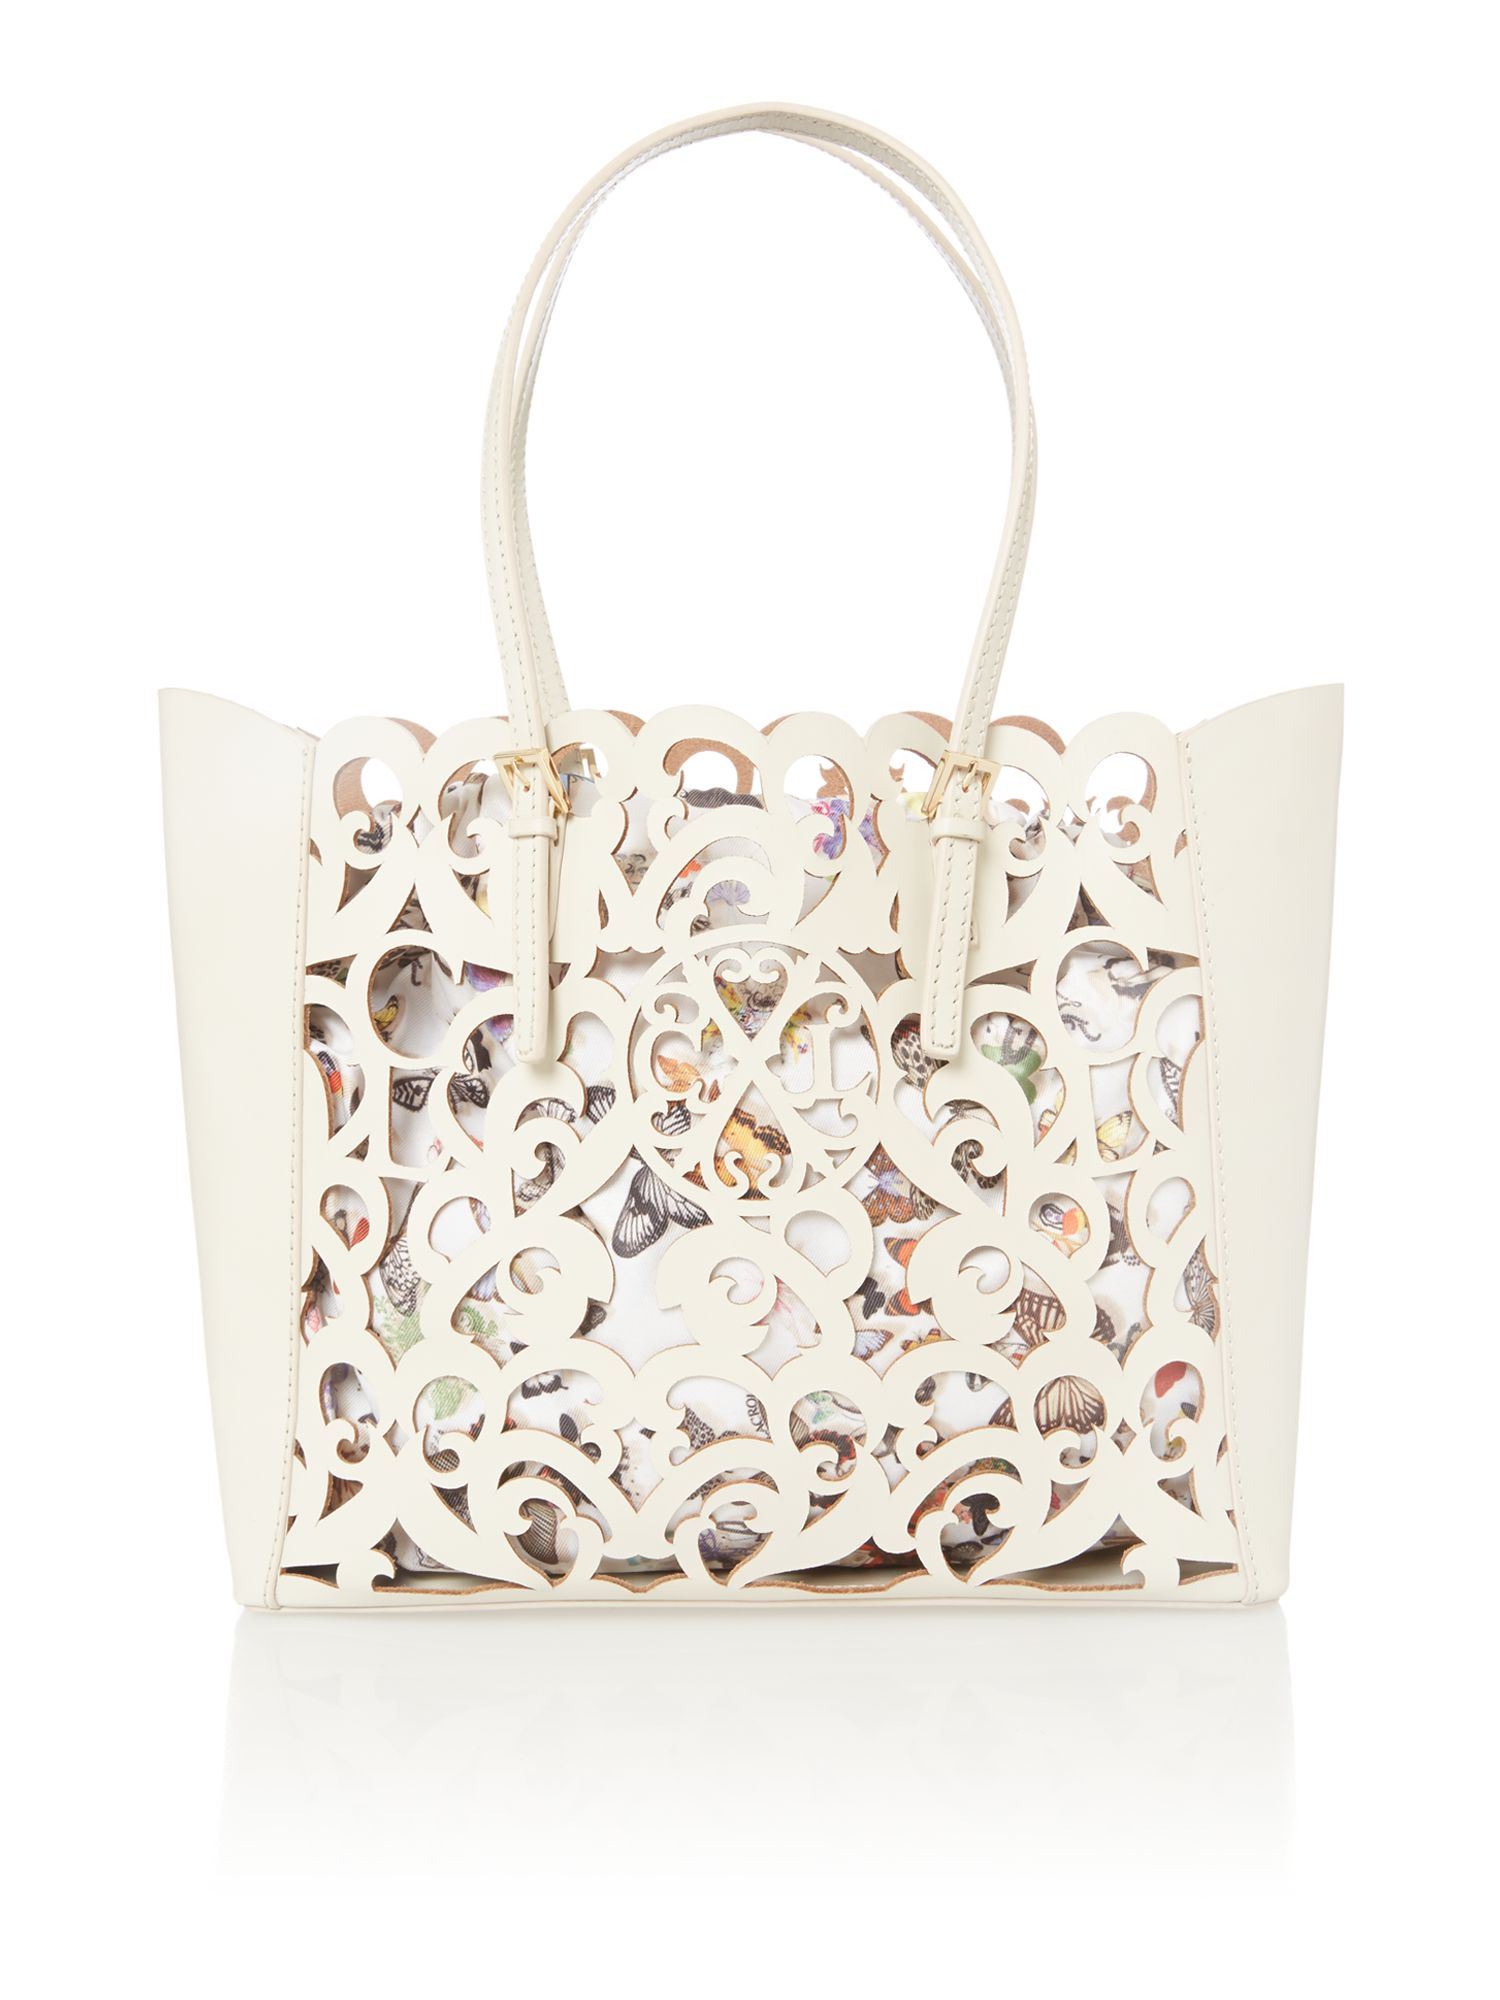 Ew cut out tote bag